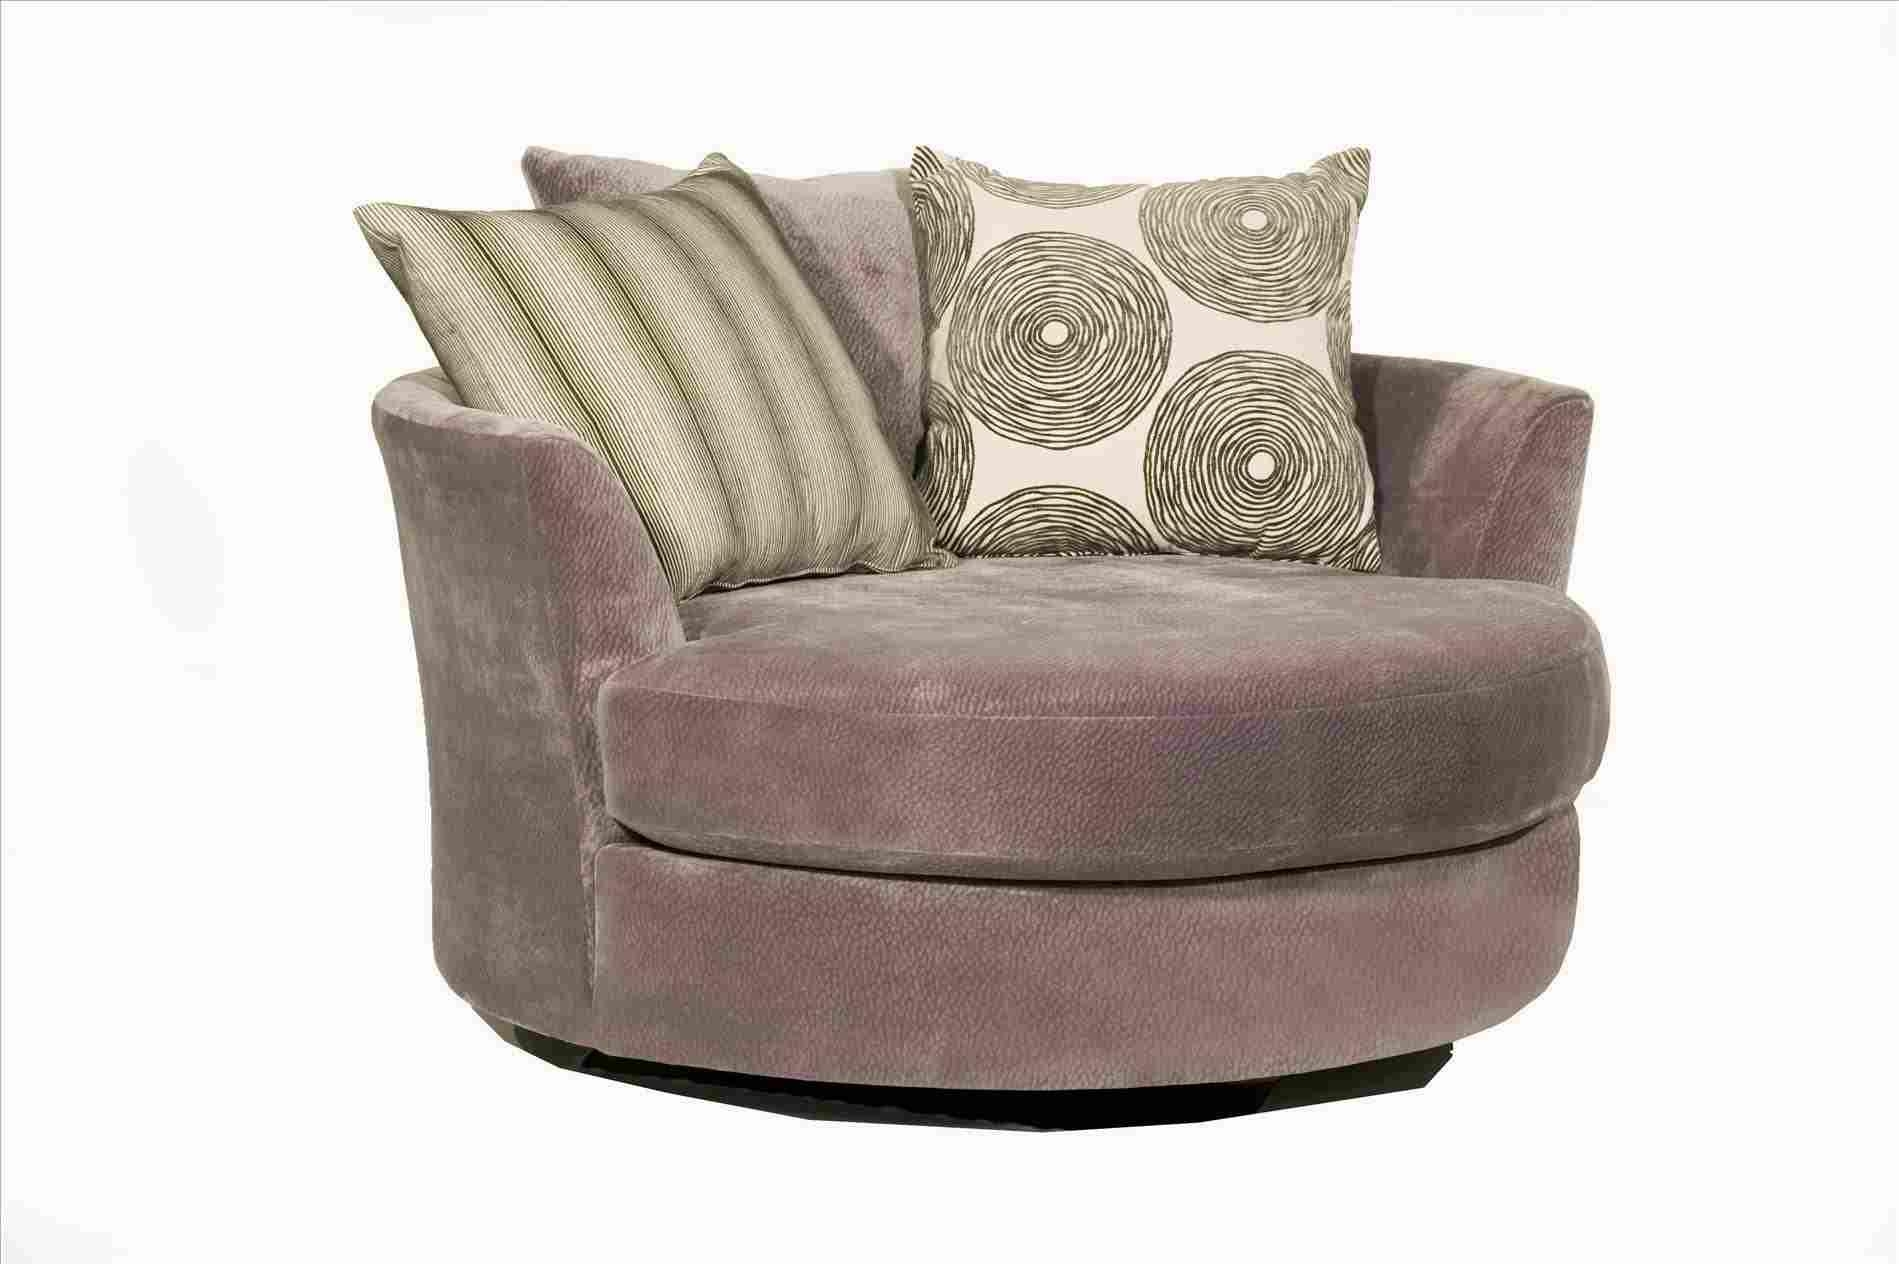 swivel chair round elastic arm covers 20 top cuddler sofa chairs ideas